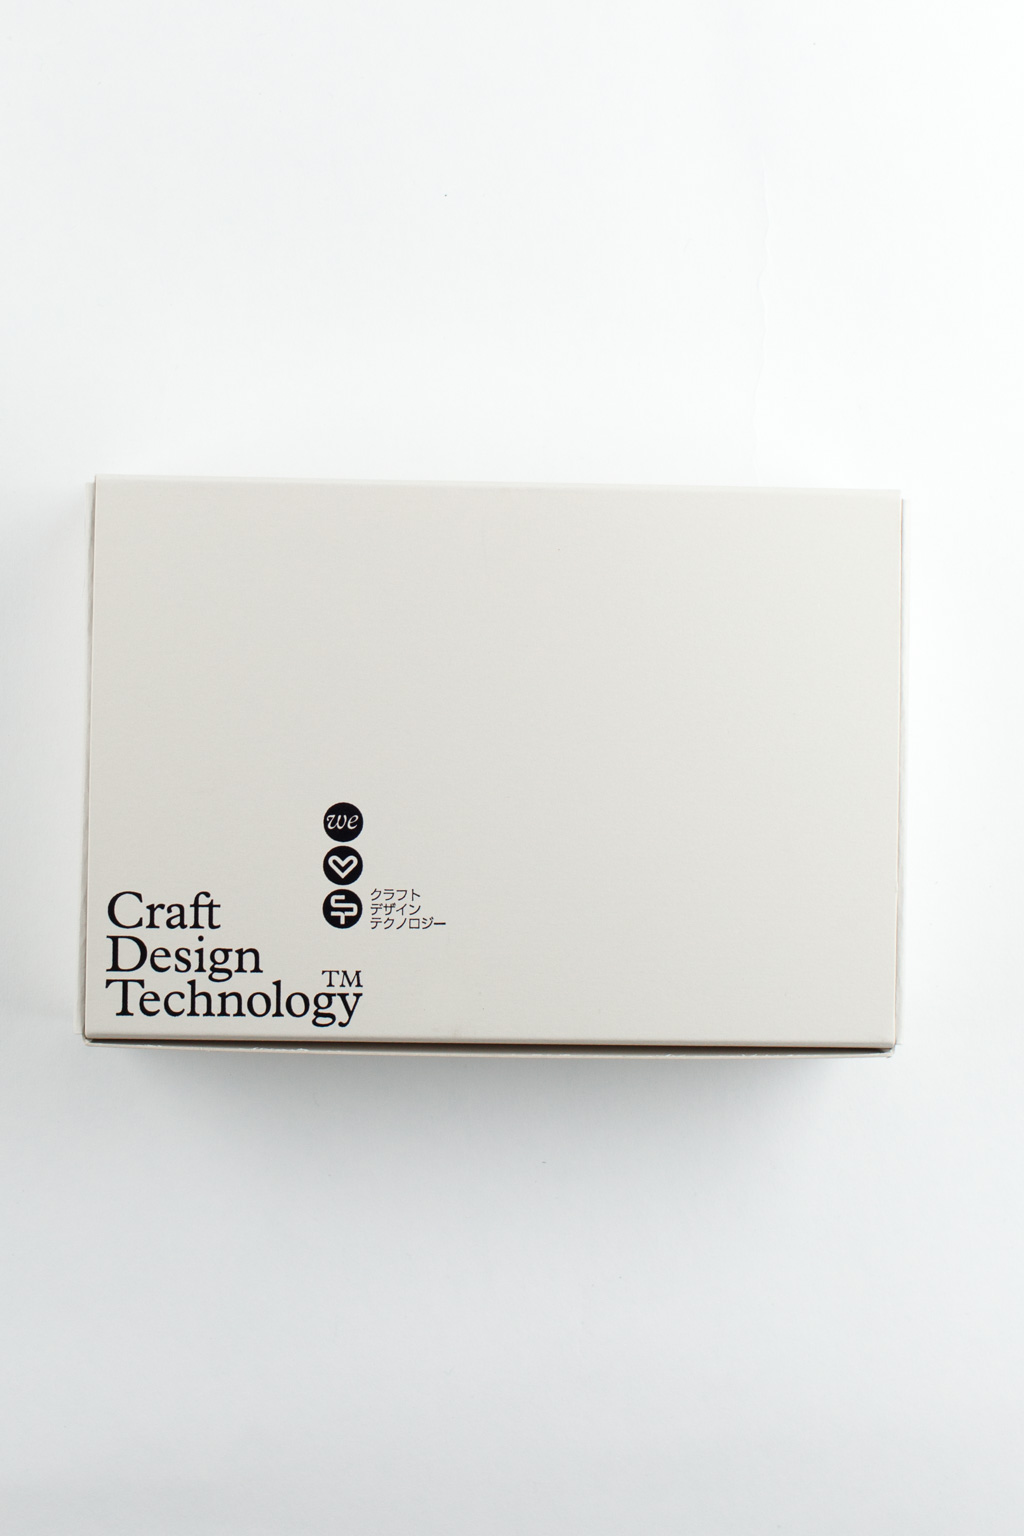 Craft Design Technology Toronto